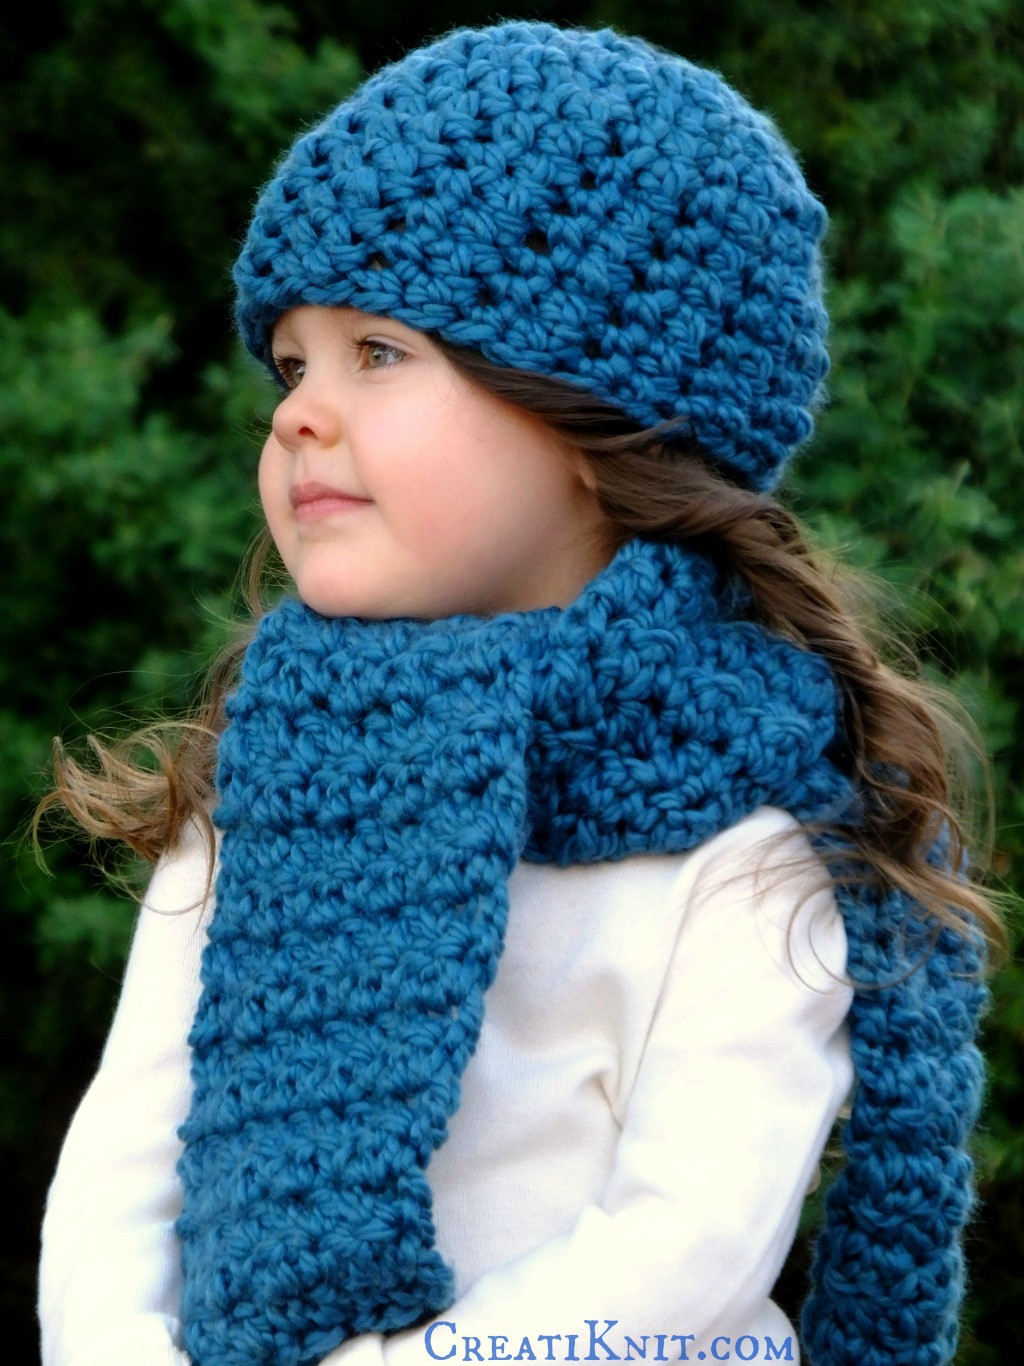 Awesome Crochet Hat and Scarf Sets Crochet Sets Of Lovely 43 Images Crochet Sets